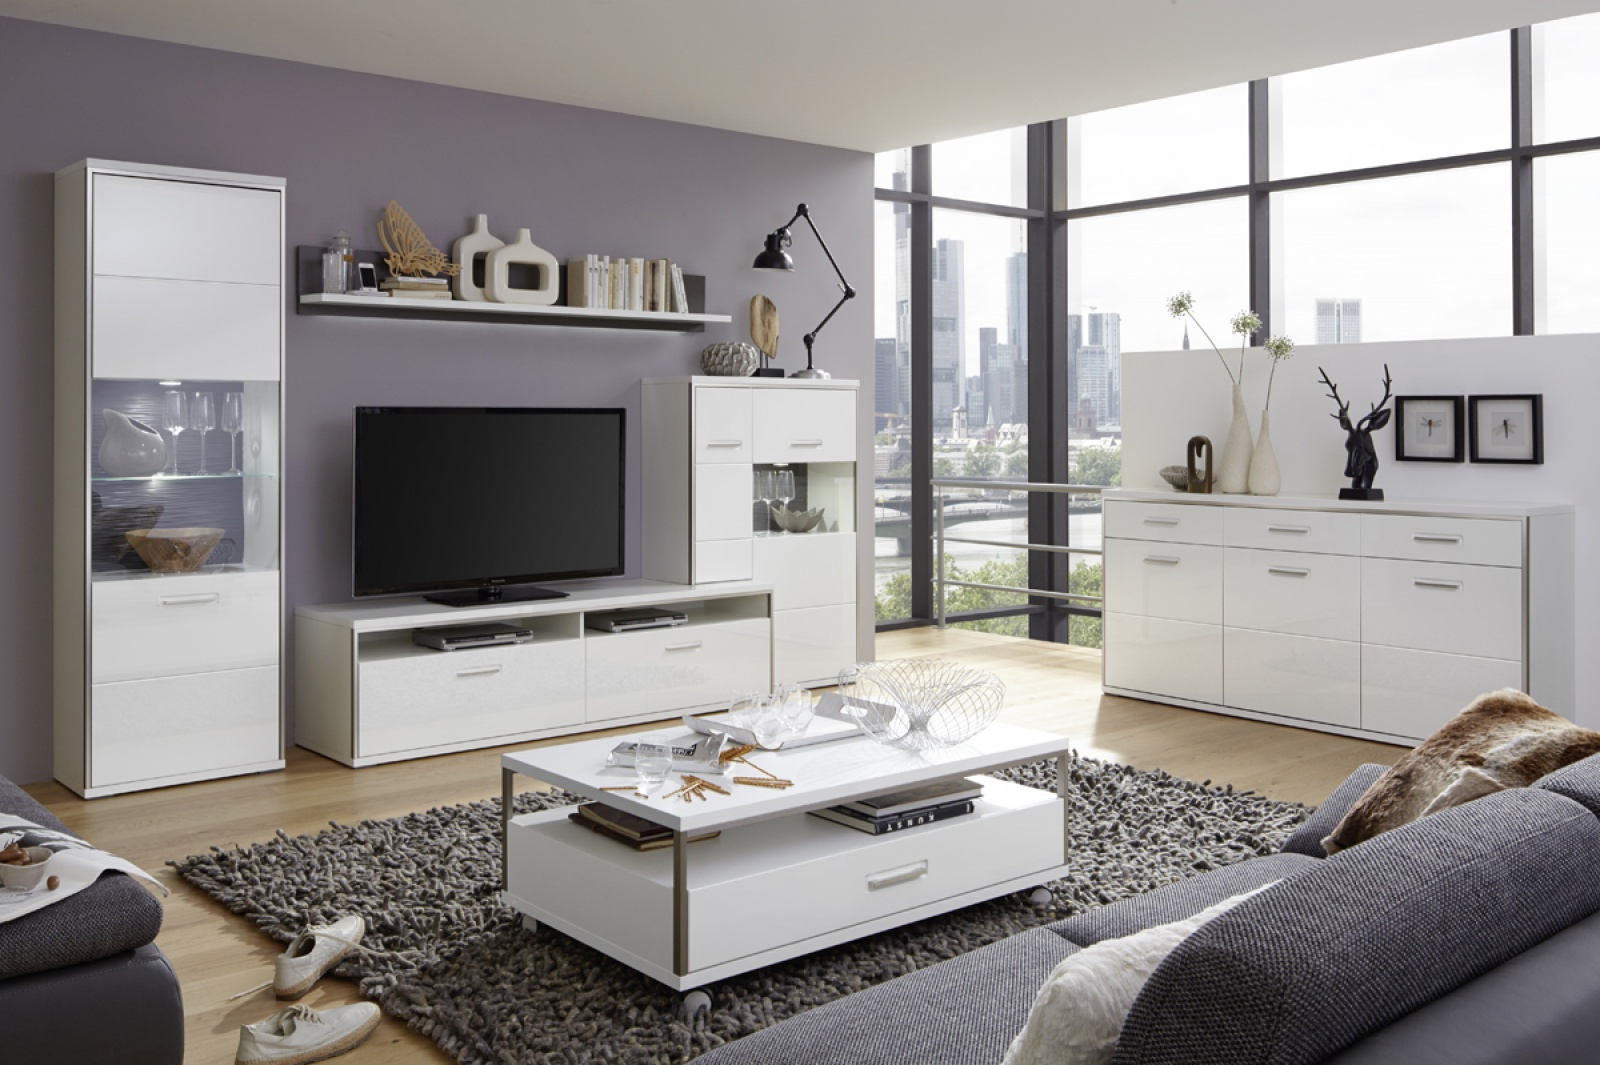 Where Can I Buy Living Room Furniture Online?